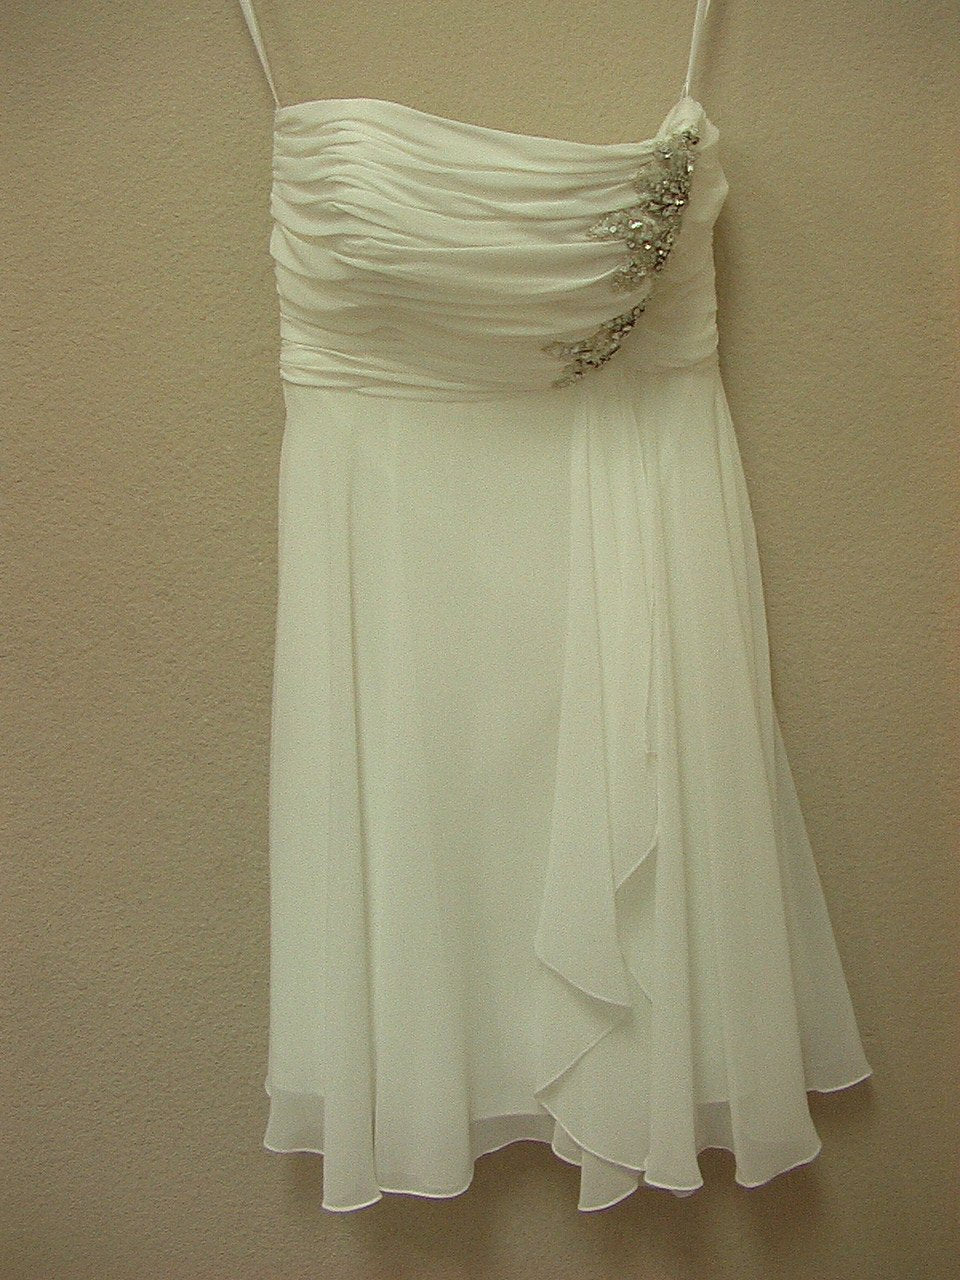 Allure 2304 Ivory/Silver size 8 In Stock Wedding Dress - Tom's Bridal